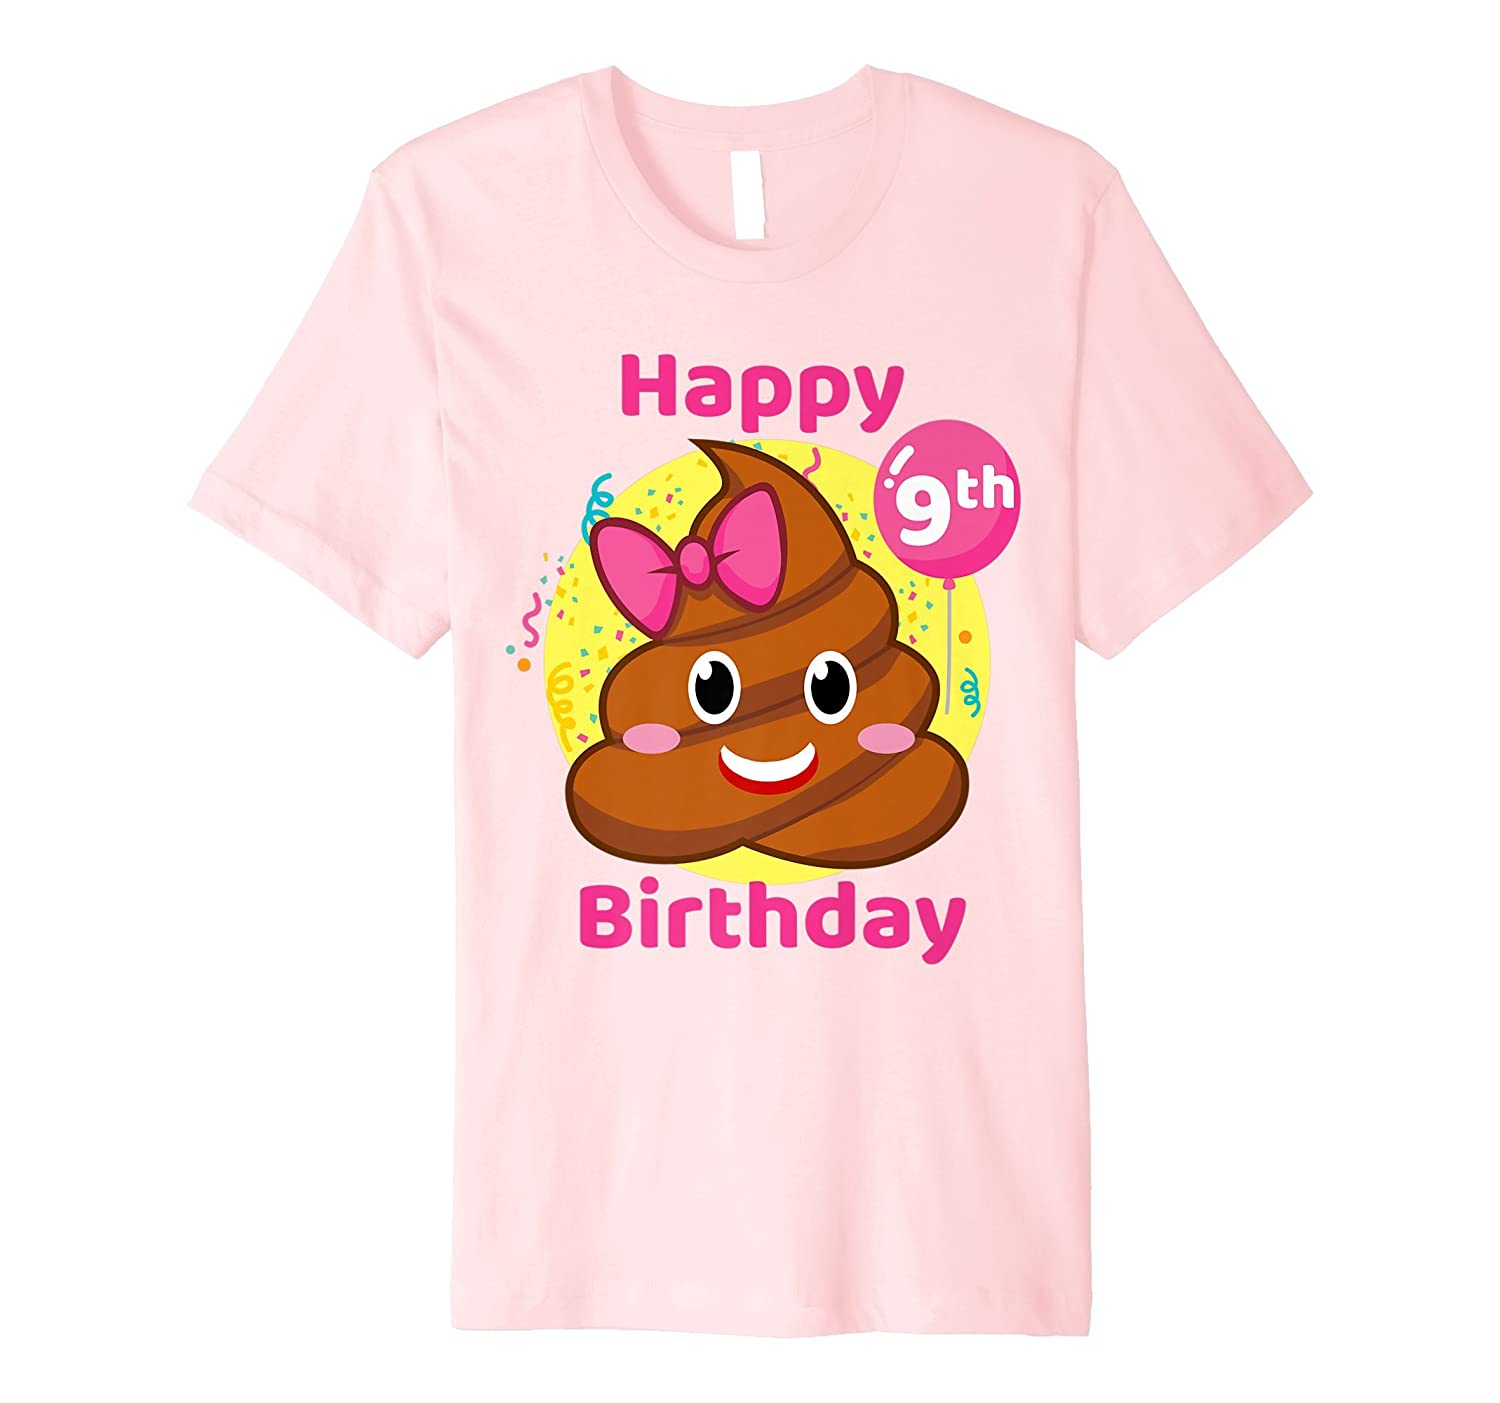 Pink Poop Emojis Birthday Shirt Girls 9th Party 9 Years Old Prm